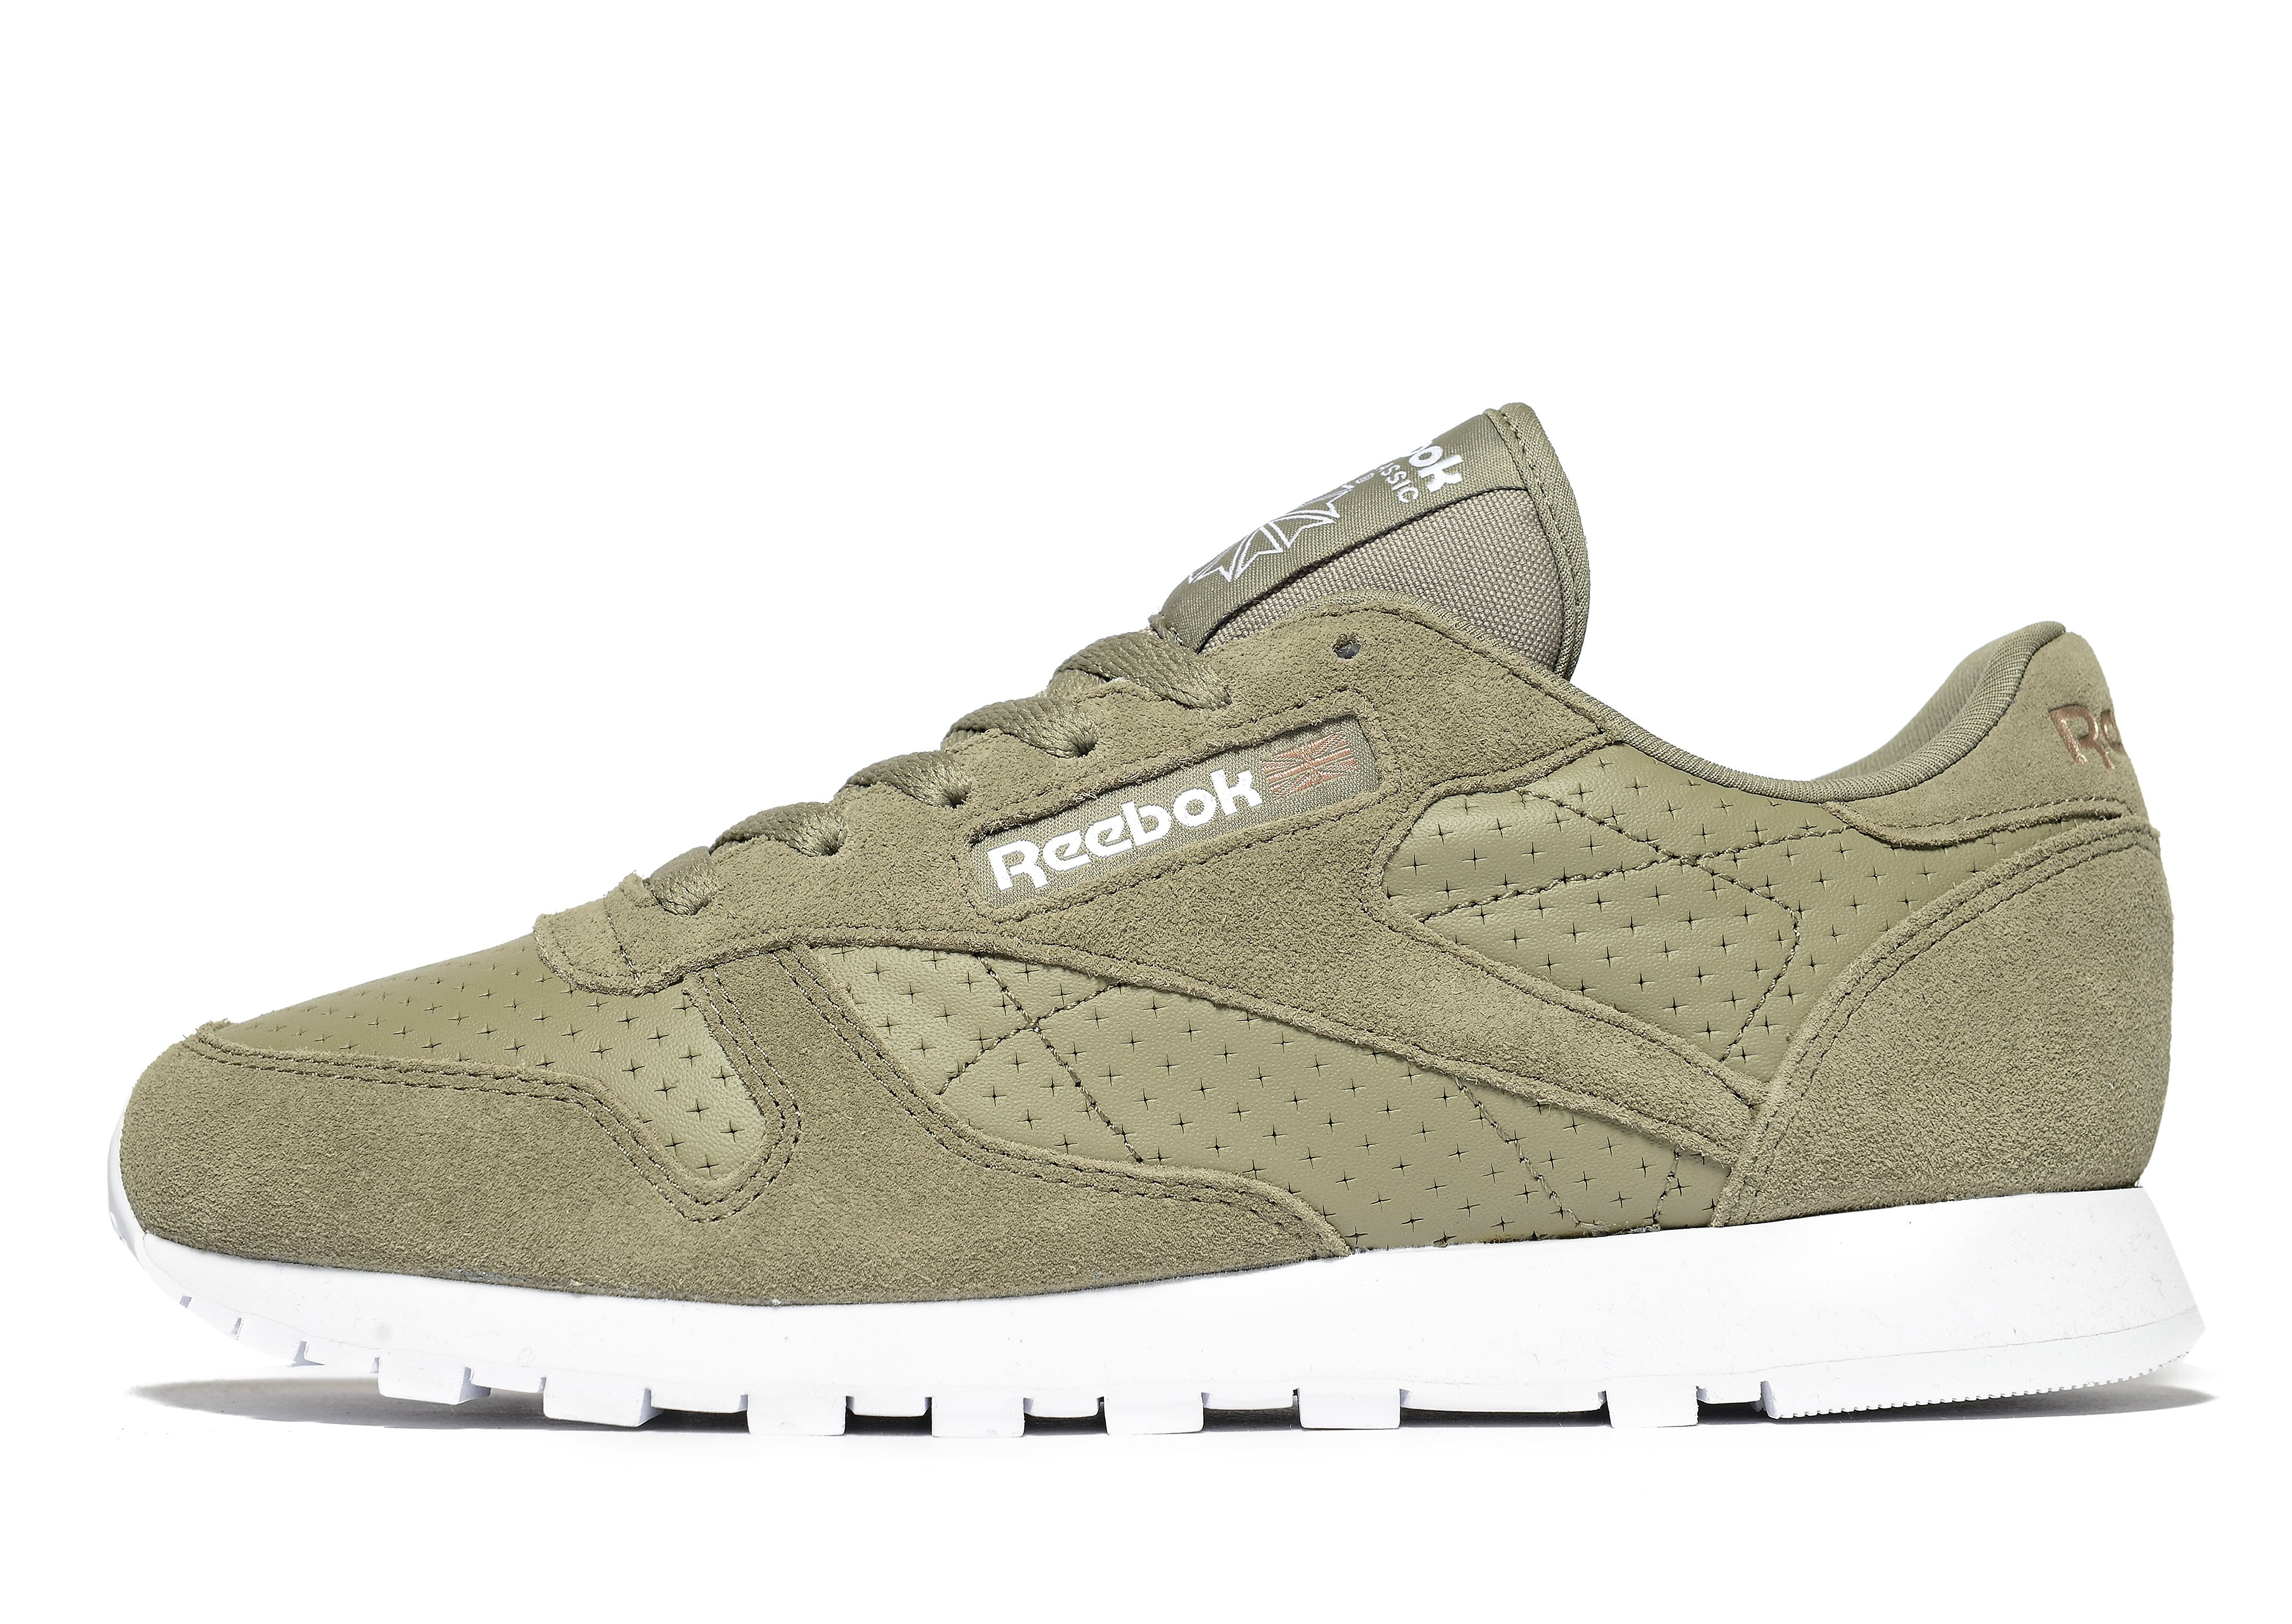 Reebok Classic Leather Perforated Reebok Femme